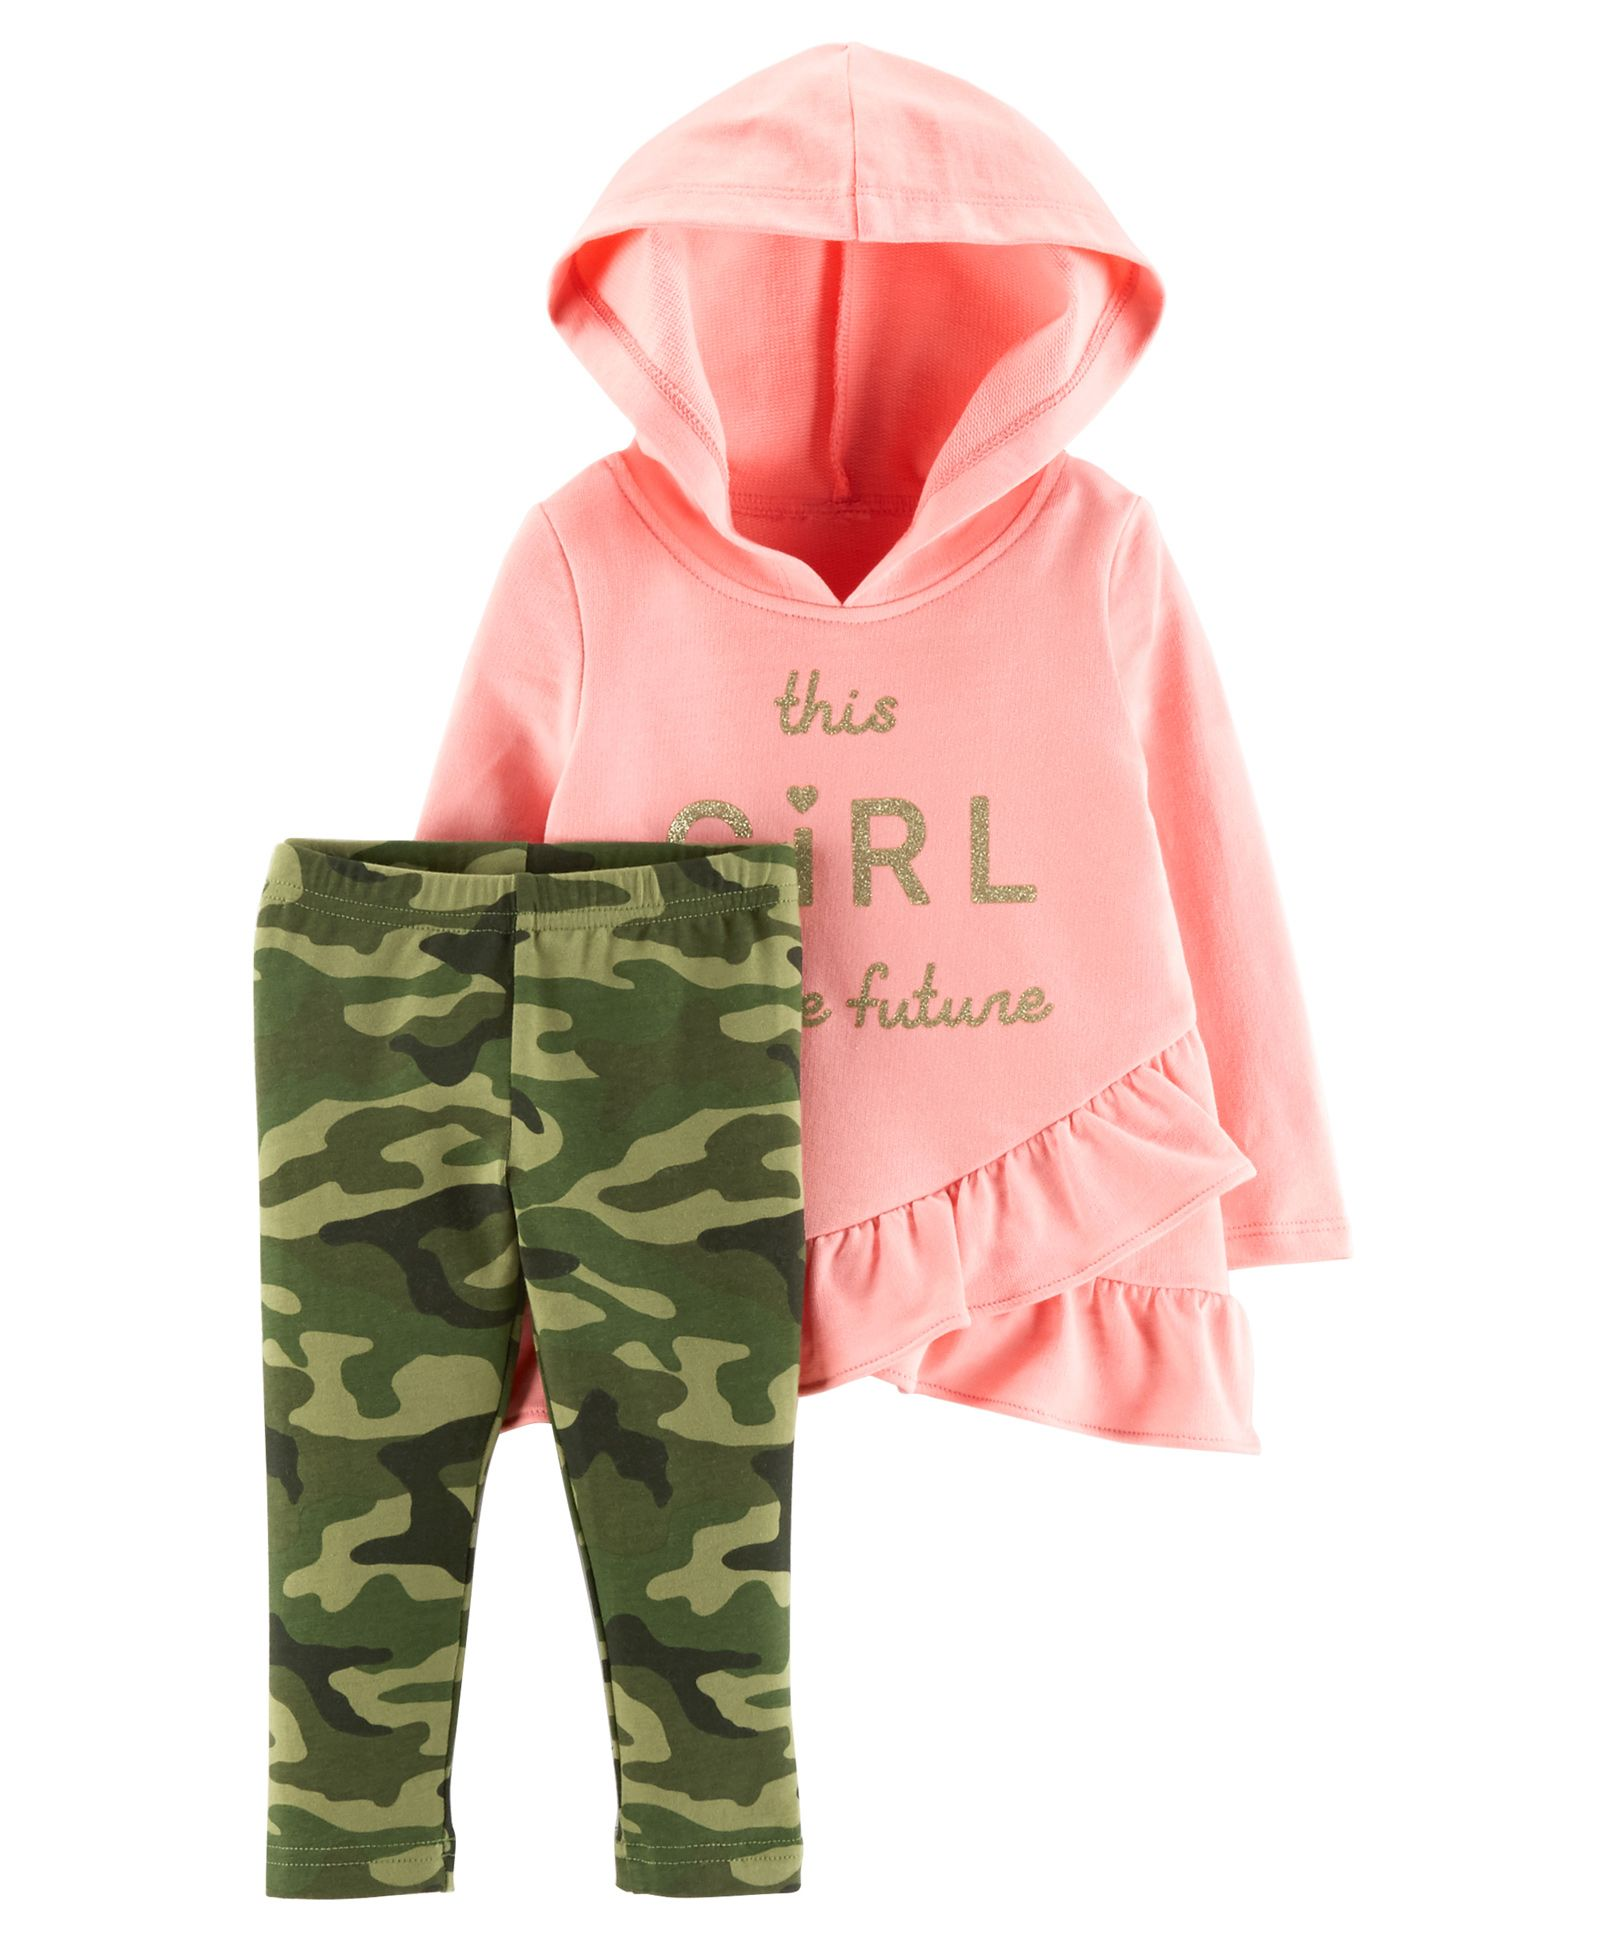 Camo Hoodie India Buy Carters 2piece French Terry Hoodie Camo Legging Set Pink Green For Girls 9 12 Months Online In India Shop At Firstcry 1917600